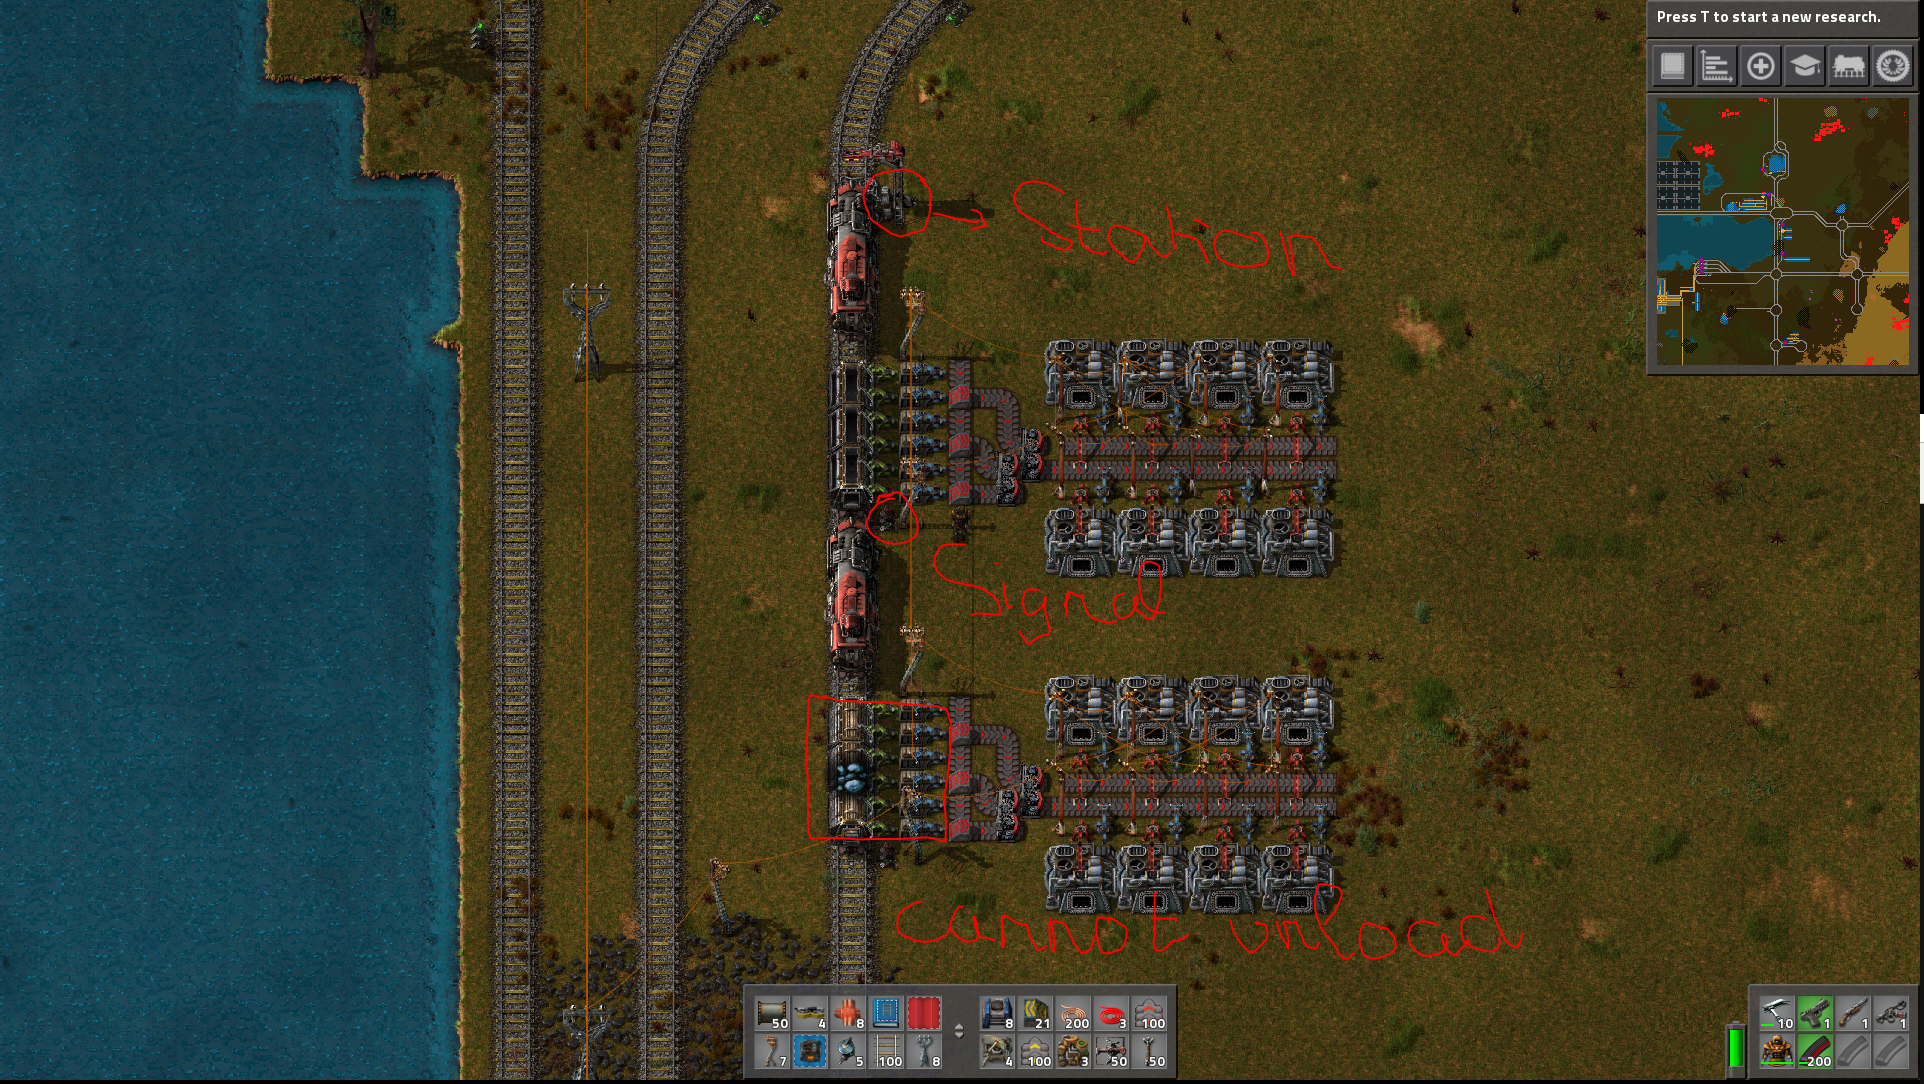 I would like both trains to be unloadable. One is stopped at a station, the other at a signal.